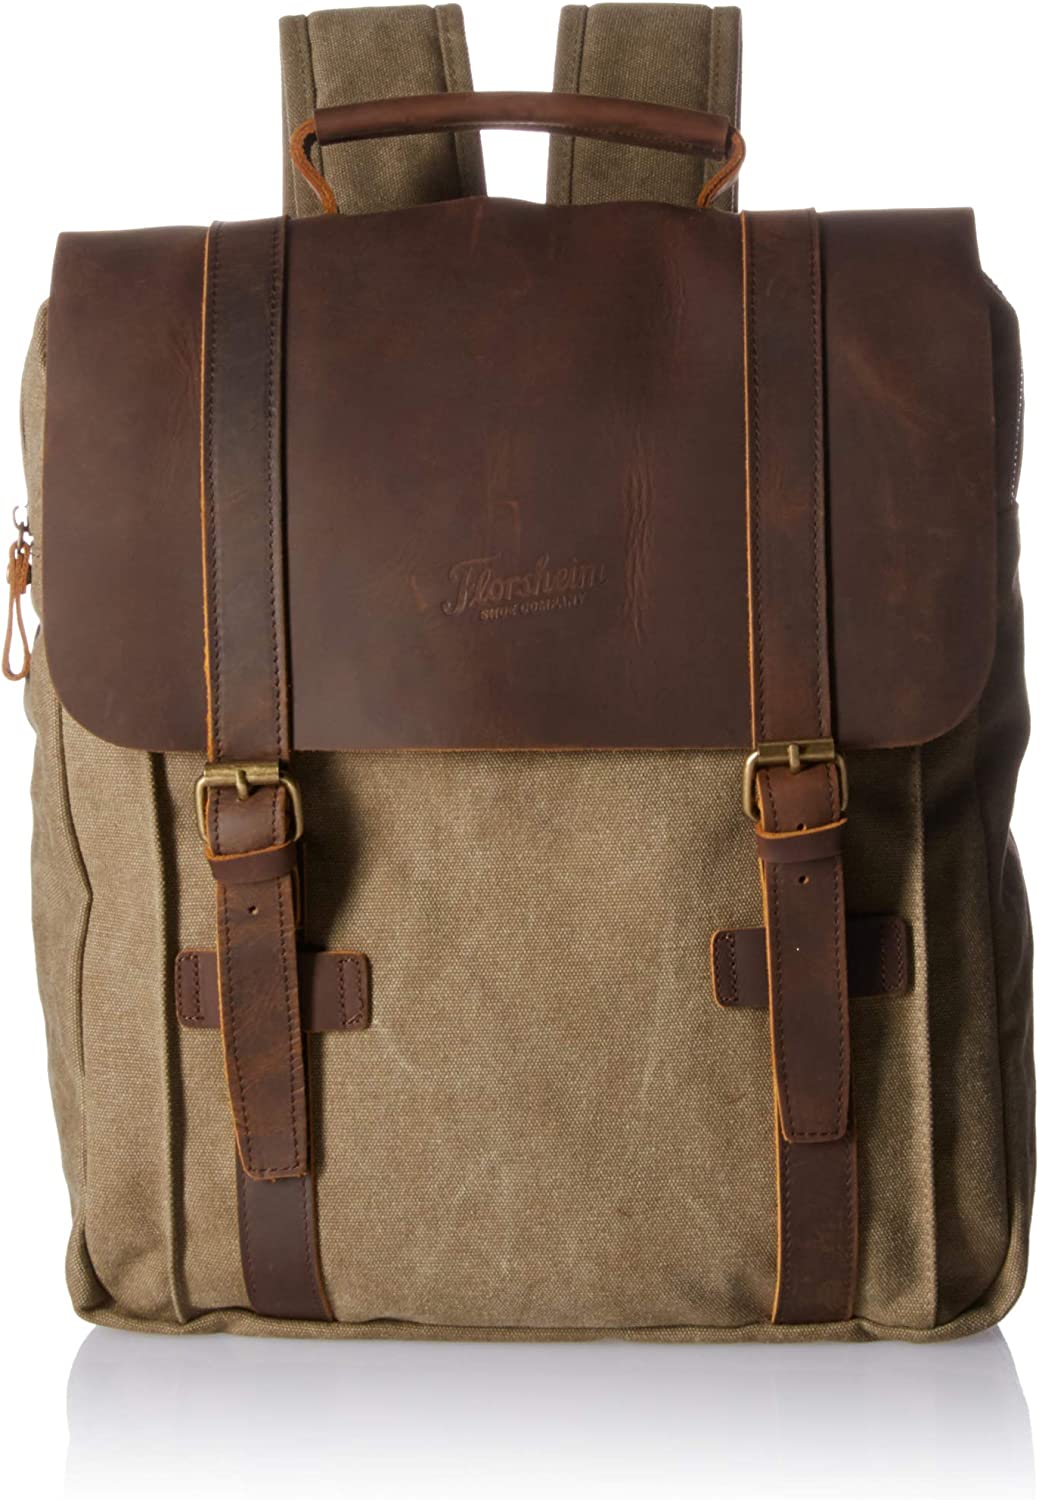 Florsheim Canvas and Leather Flap Backpack, Khaki, One Size